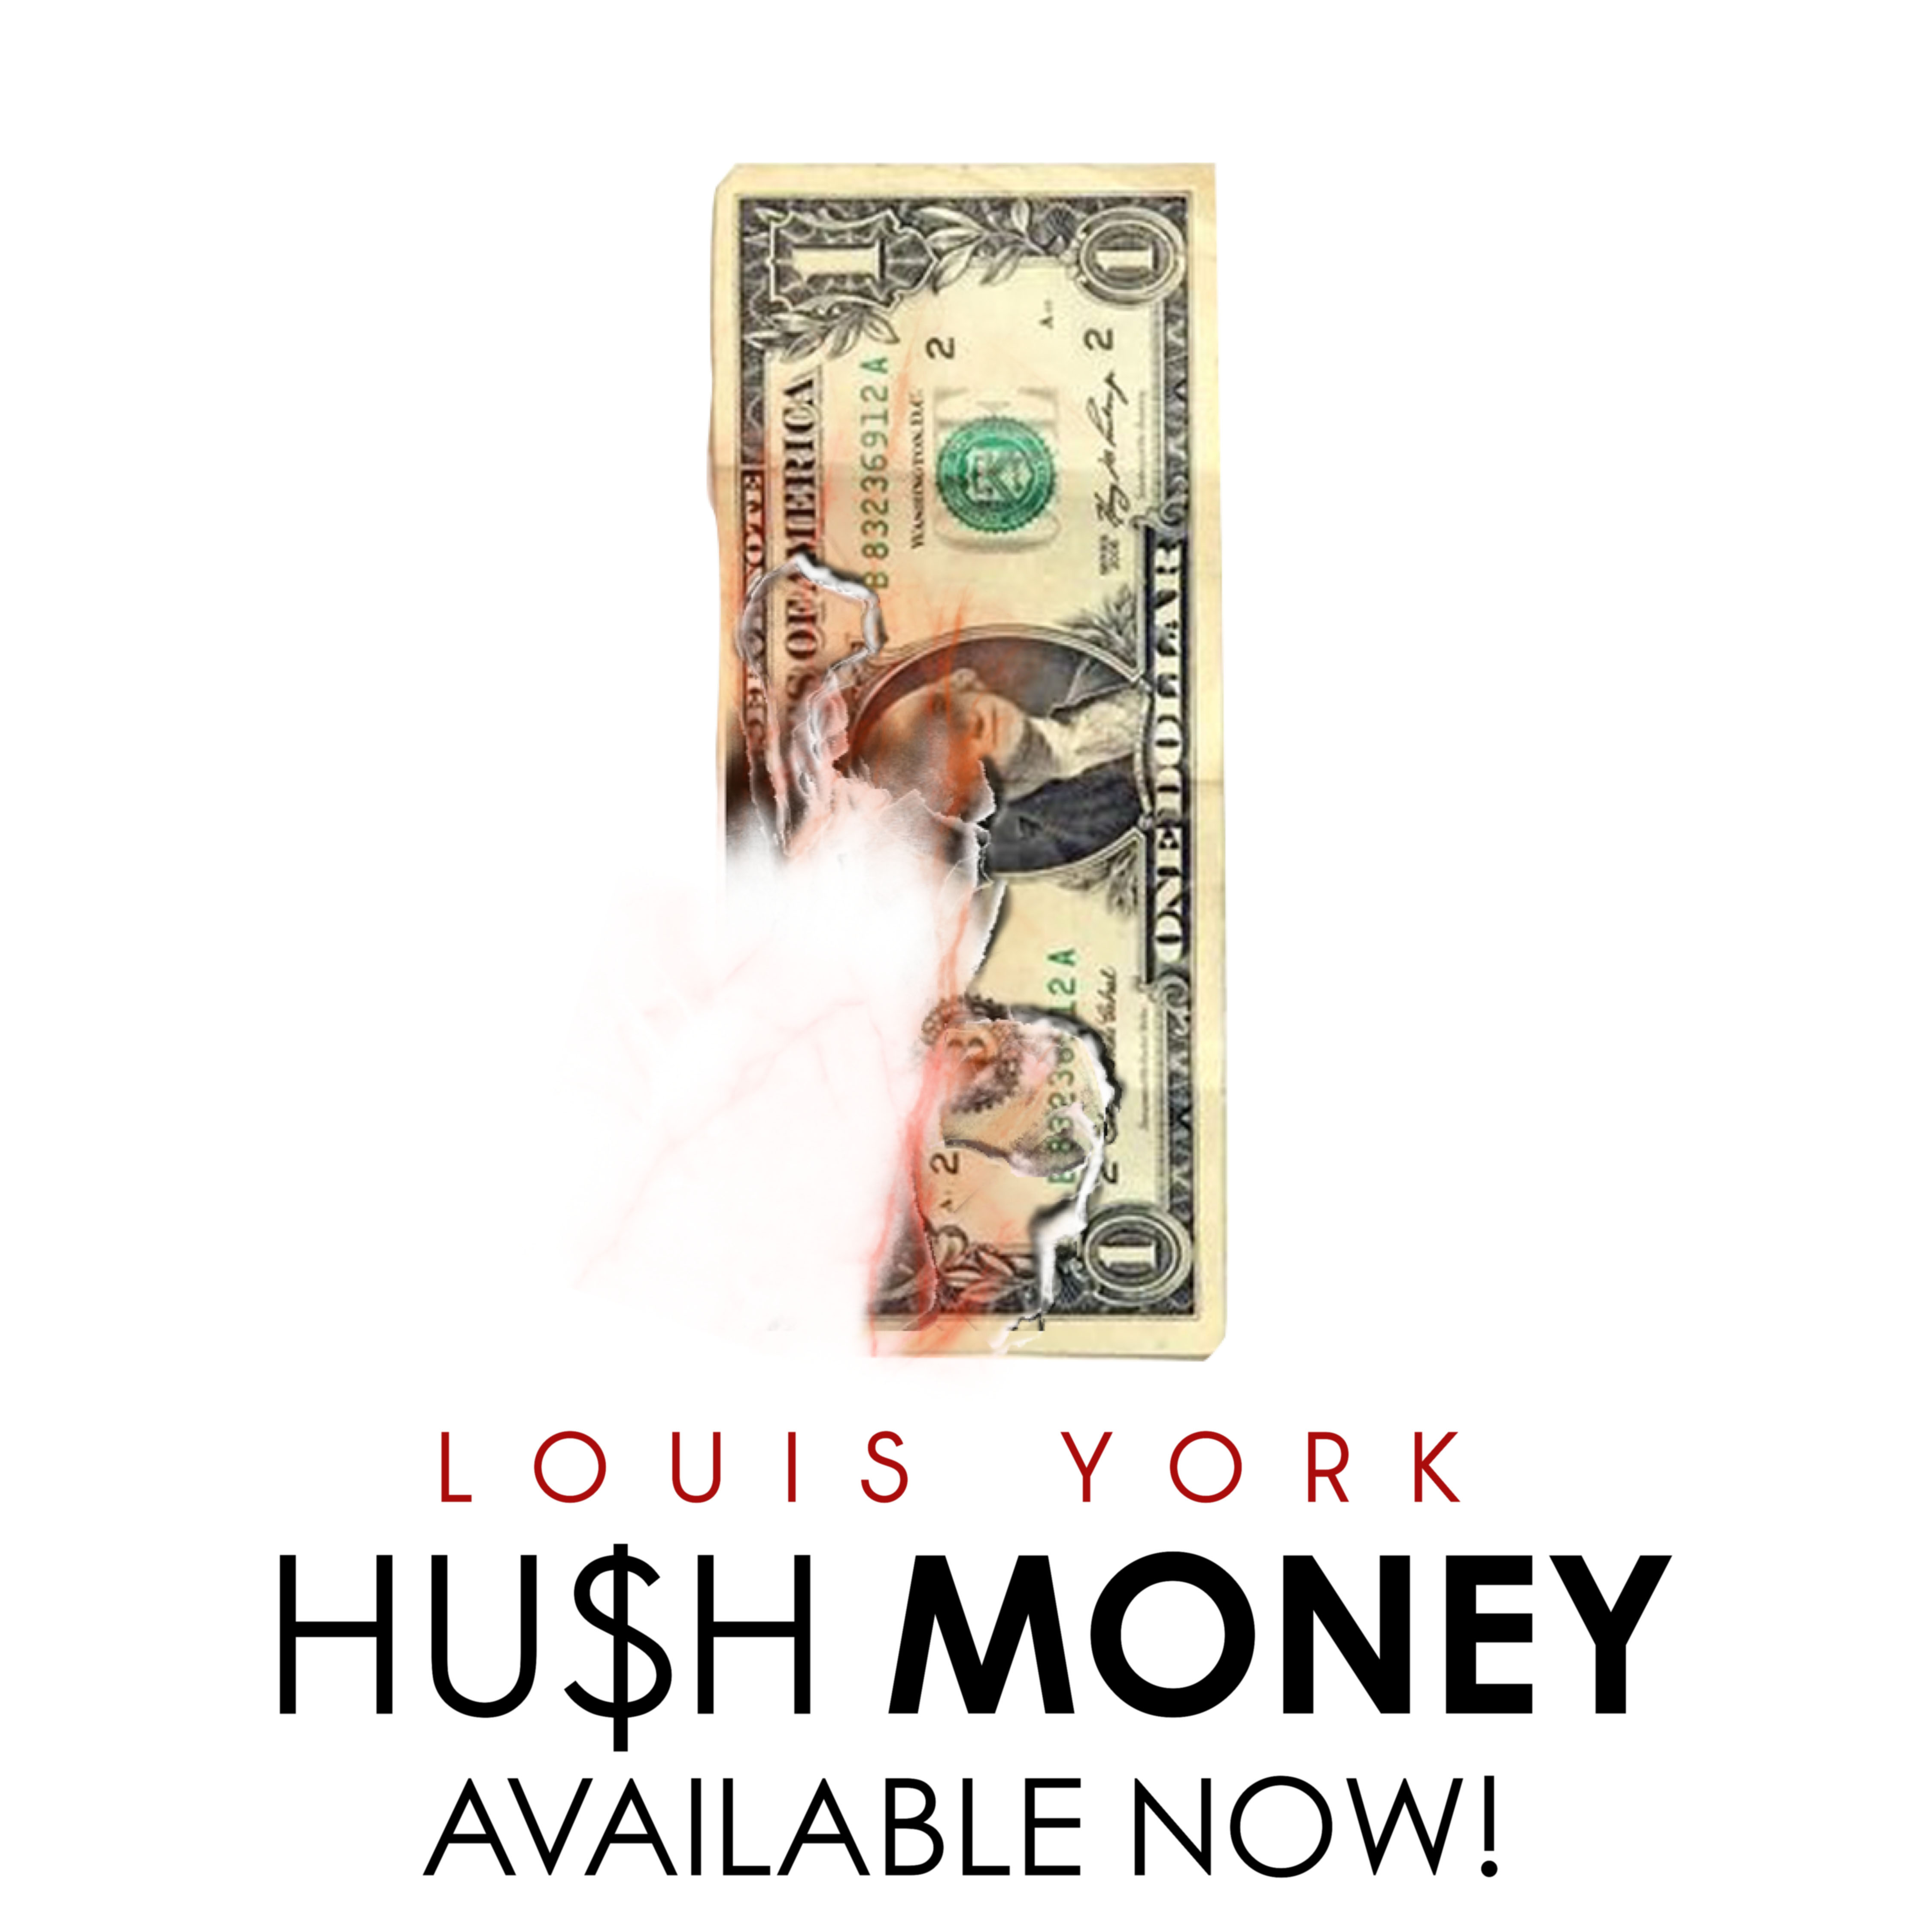 Louis York Hush Money